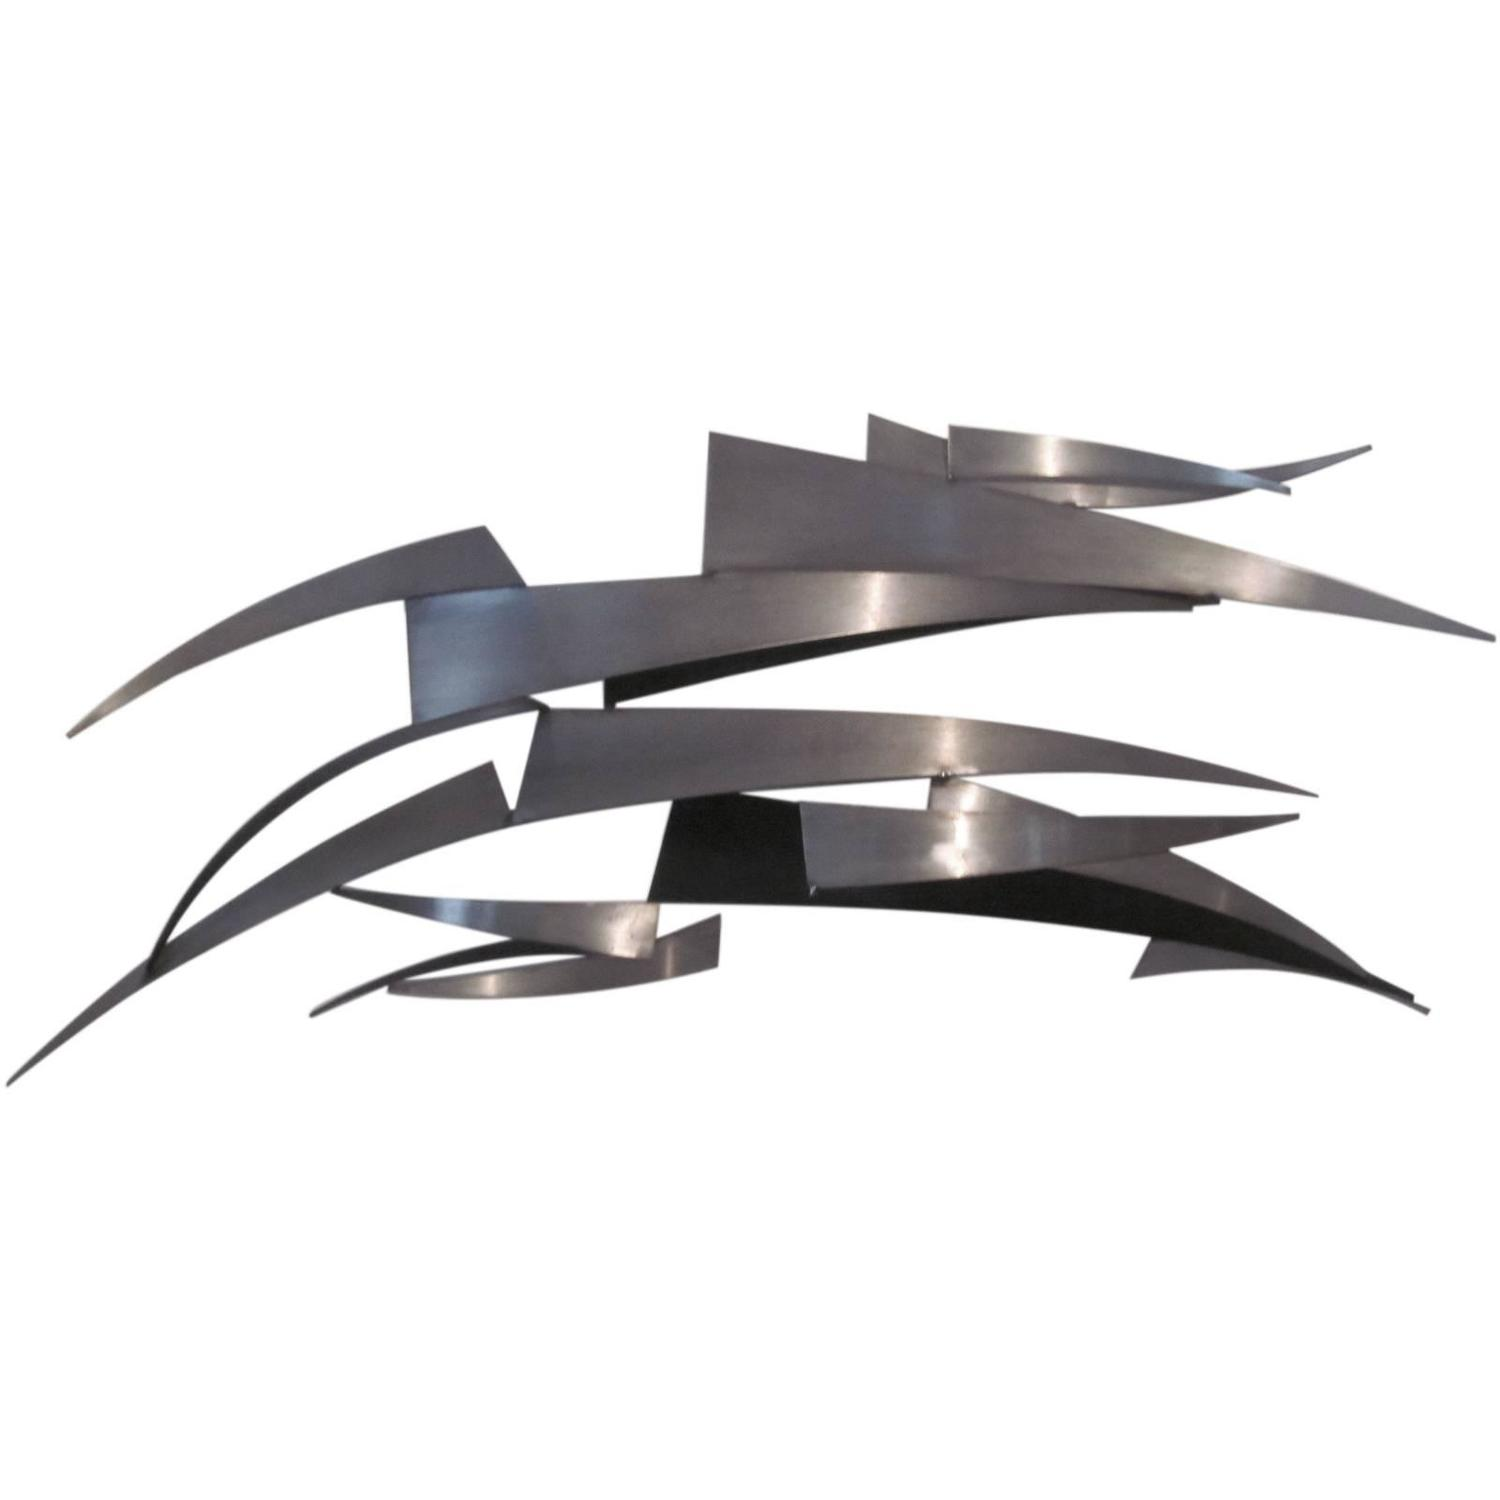 Curtis jere stainless steel wall sculpture at 1stdibs for Stainless steel wall art